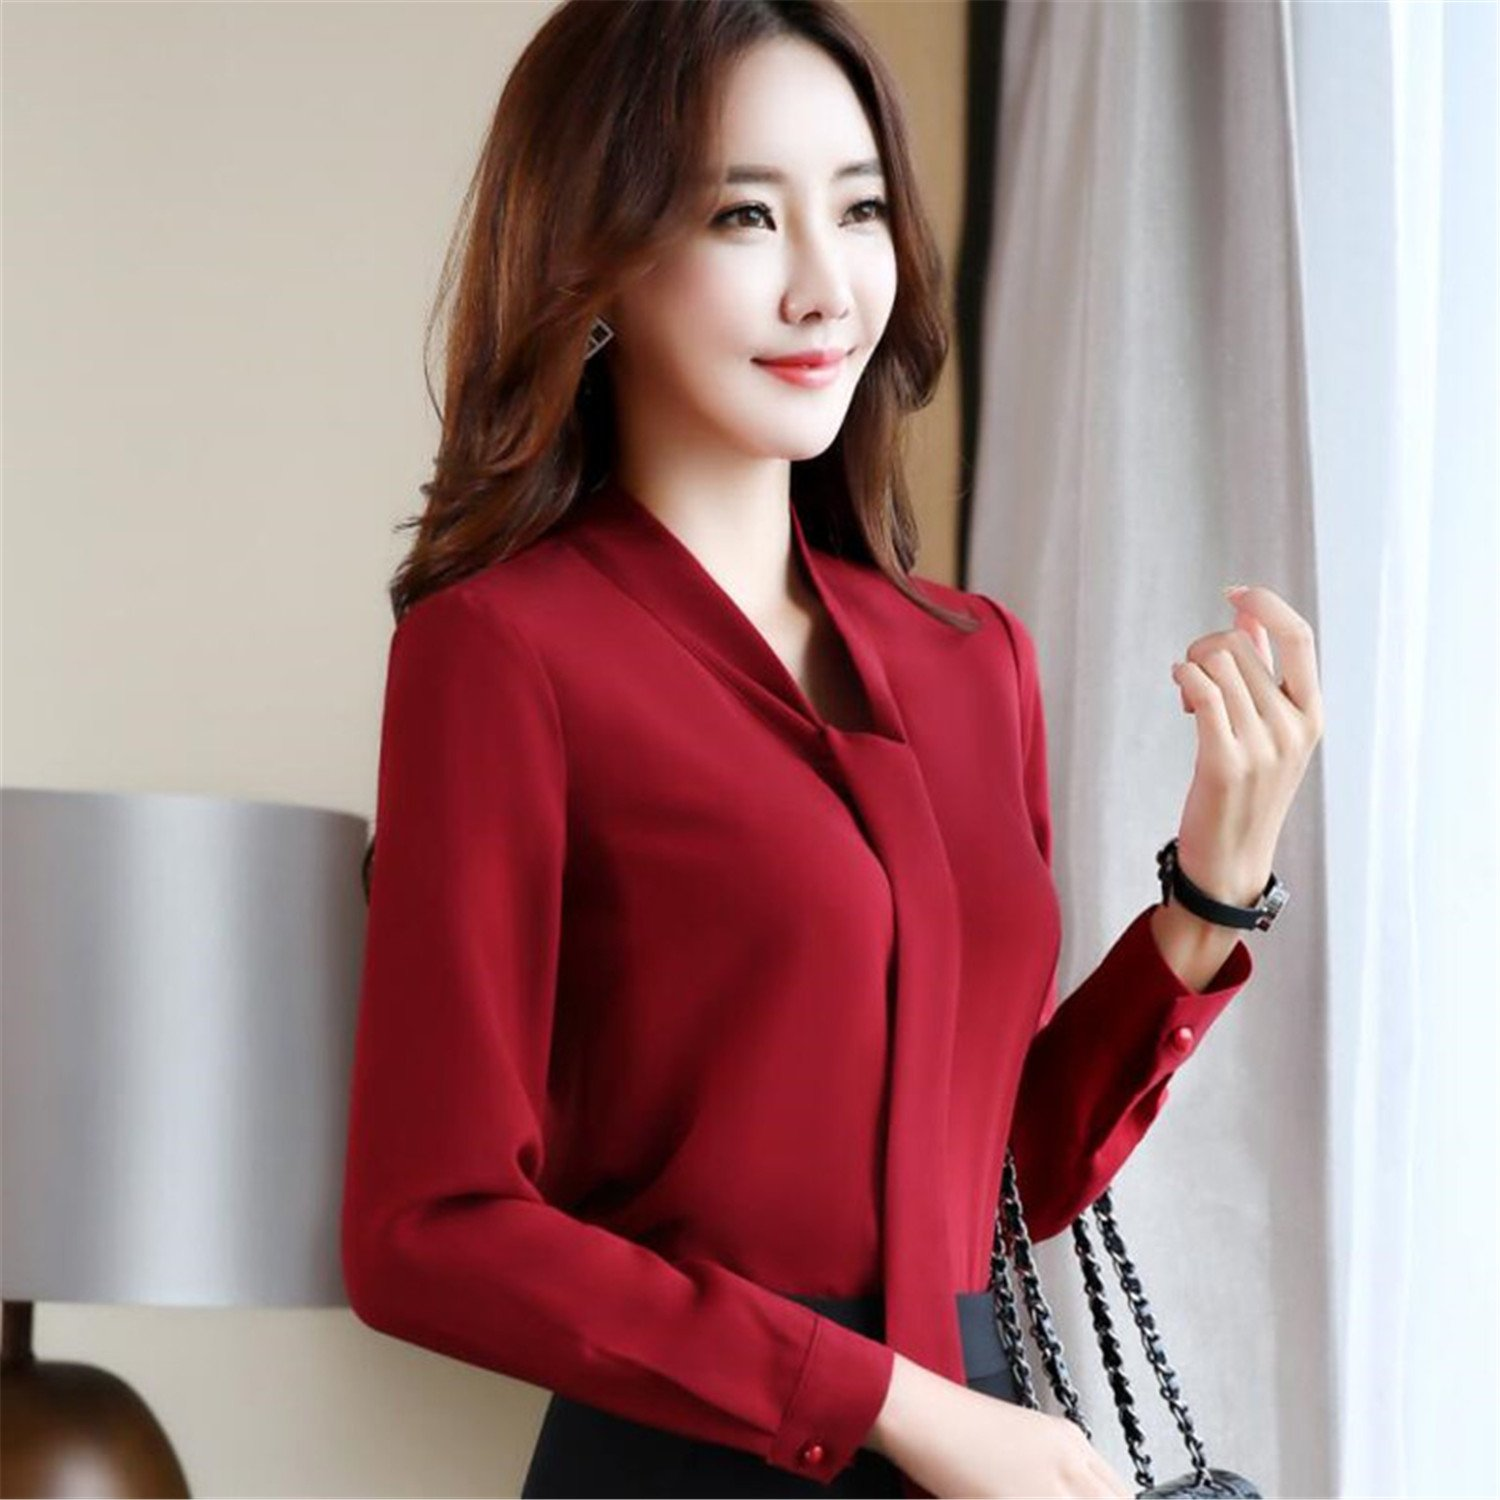 d0bd2c83155d Aworth Workout-and-training-shirts Fashion Elegant Women Chiffon Blouses  Office Lady Long Sleeve Shirt Formal Plus Size Tops Red L at Amazon Women's  ...